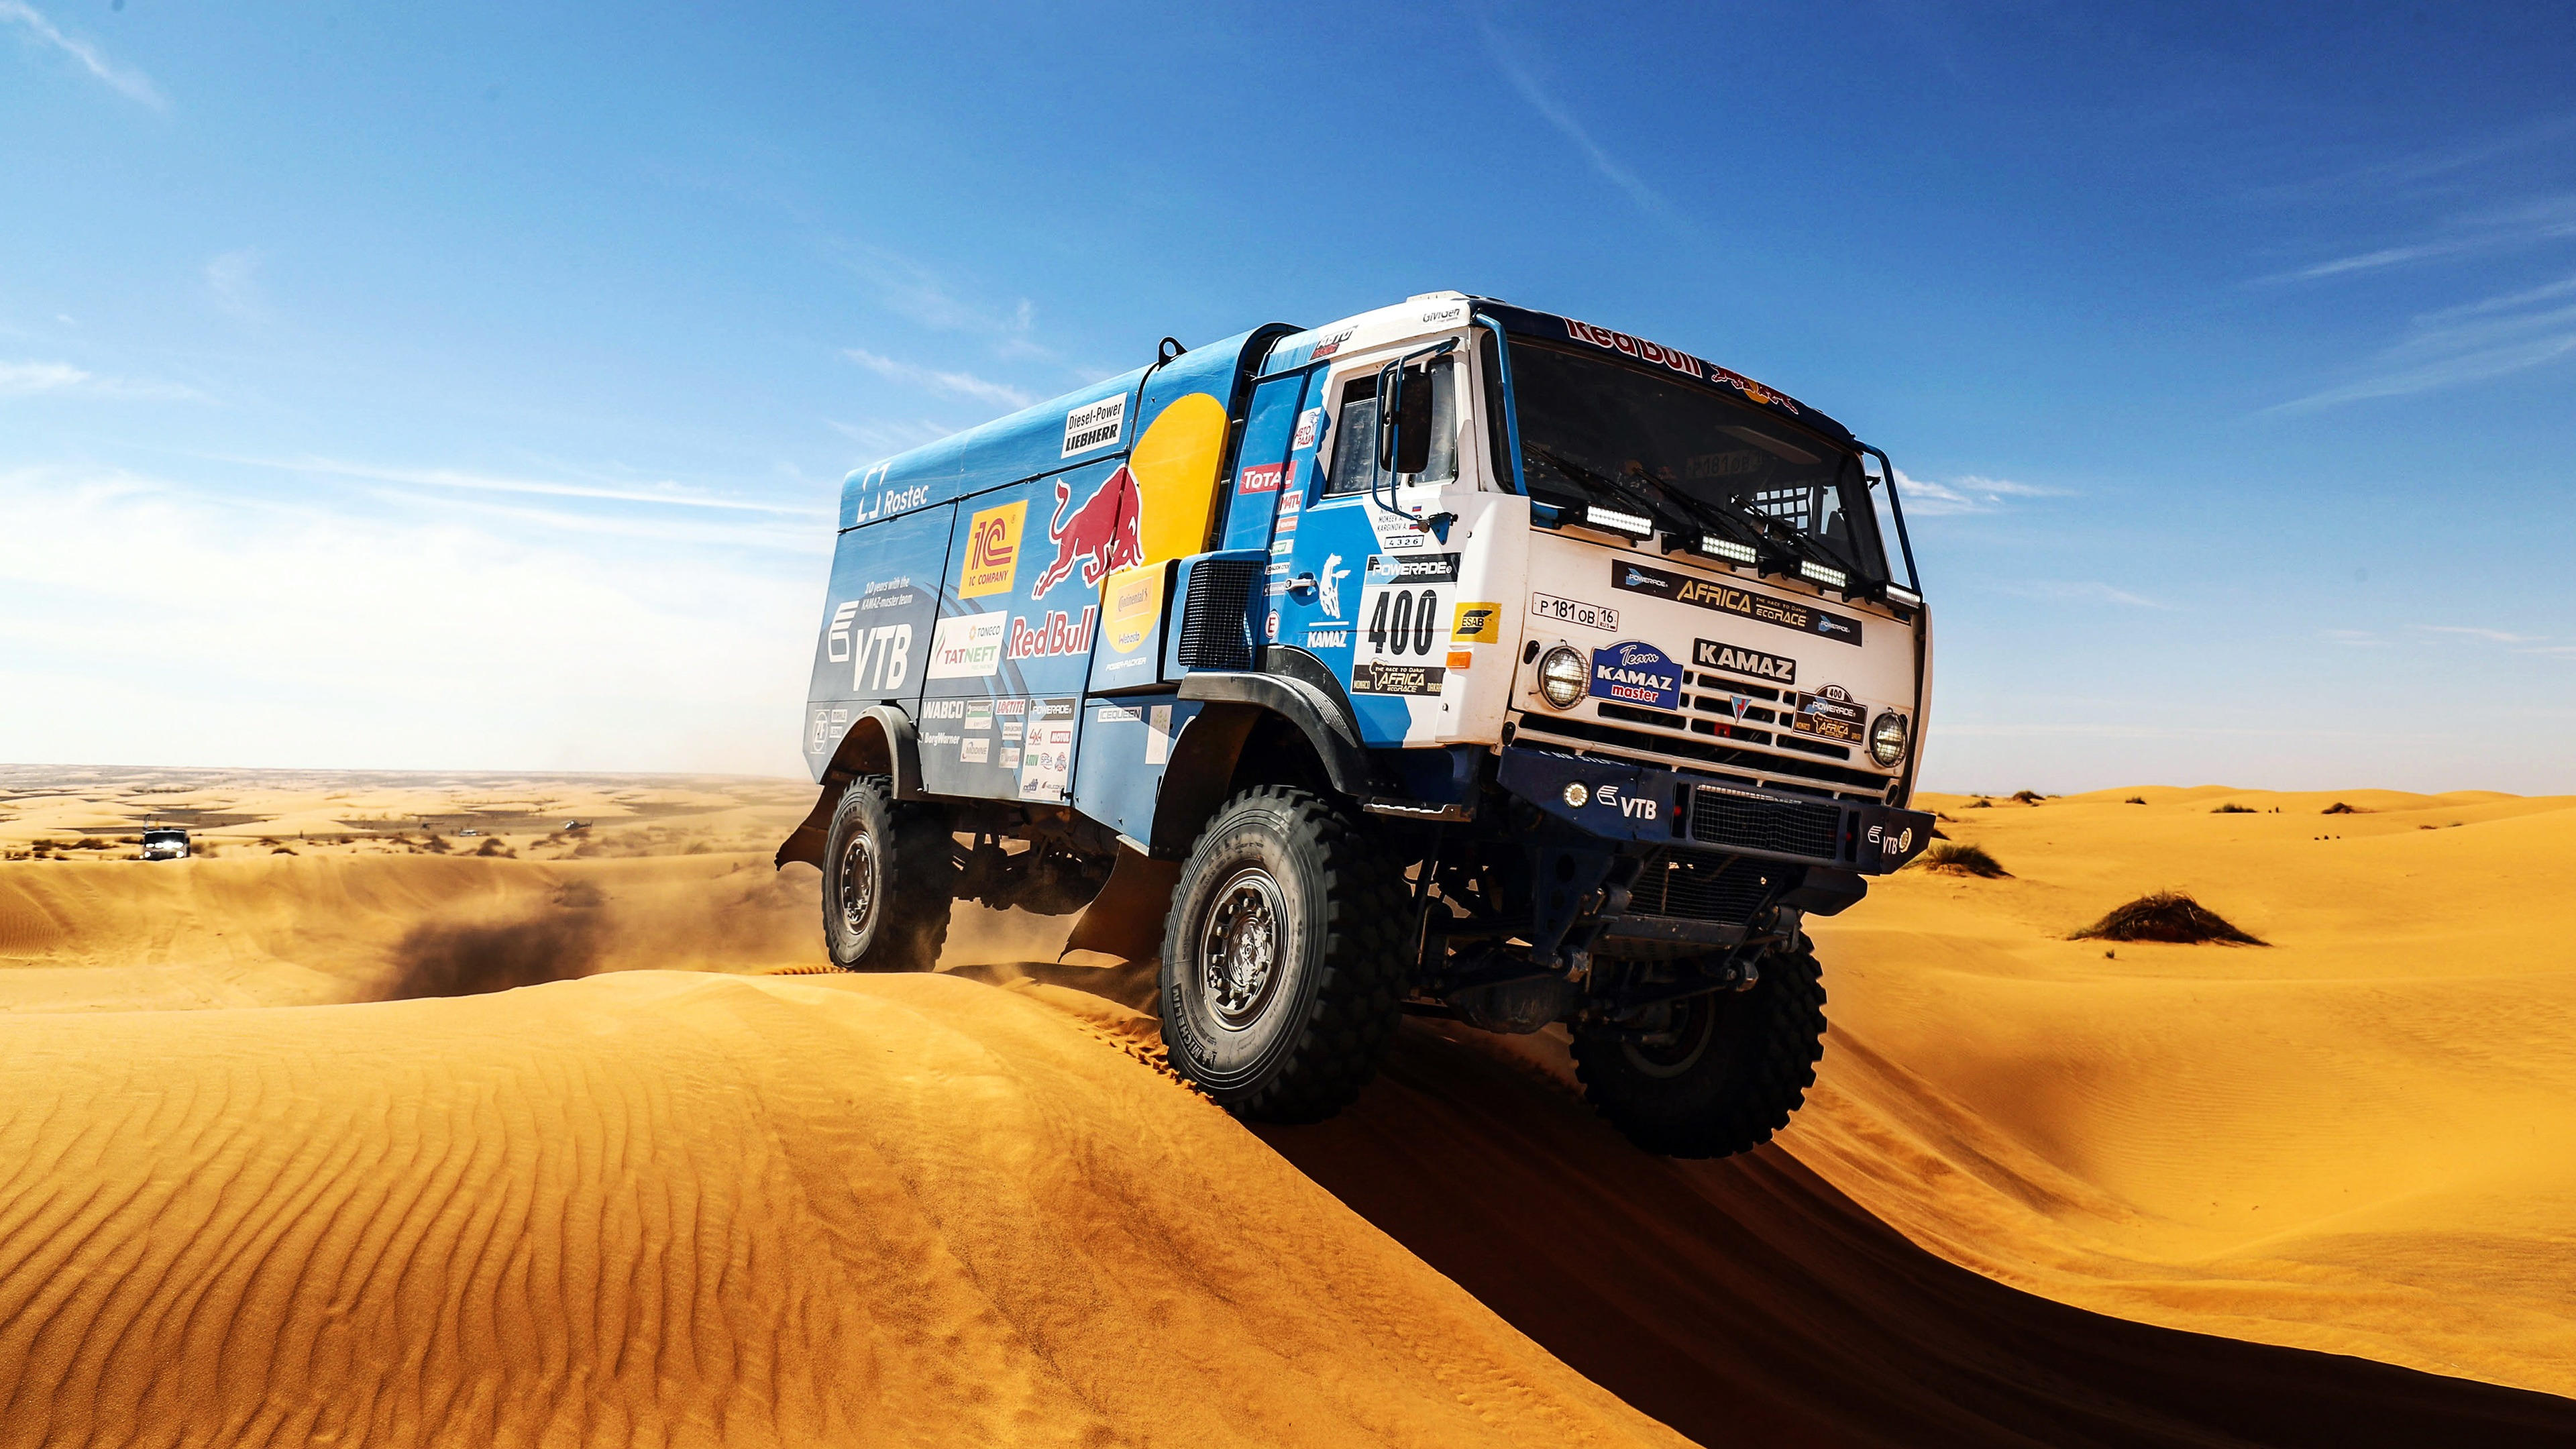 Arid desert car rally competition 4k Wallpaper 3840x2160